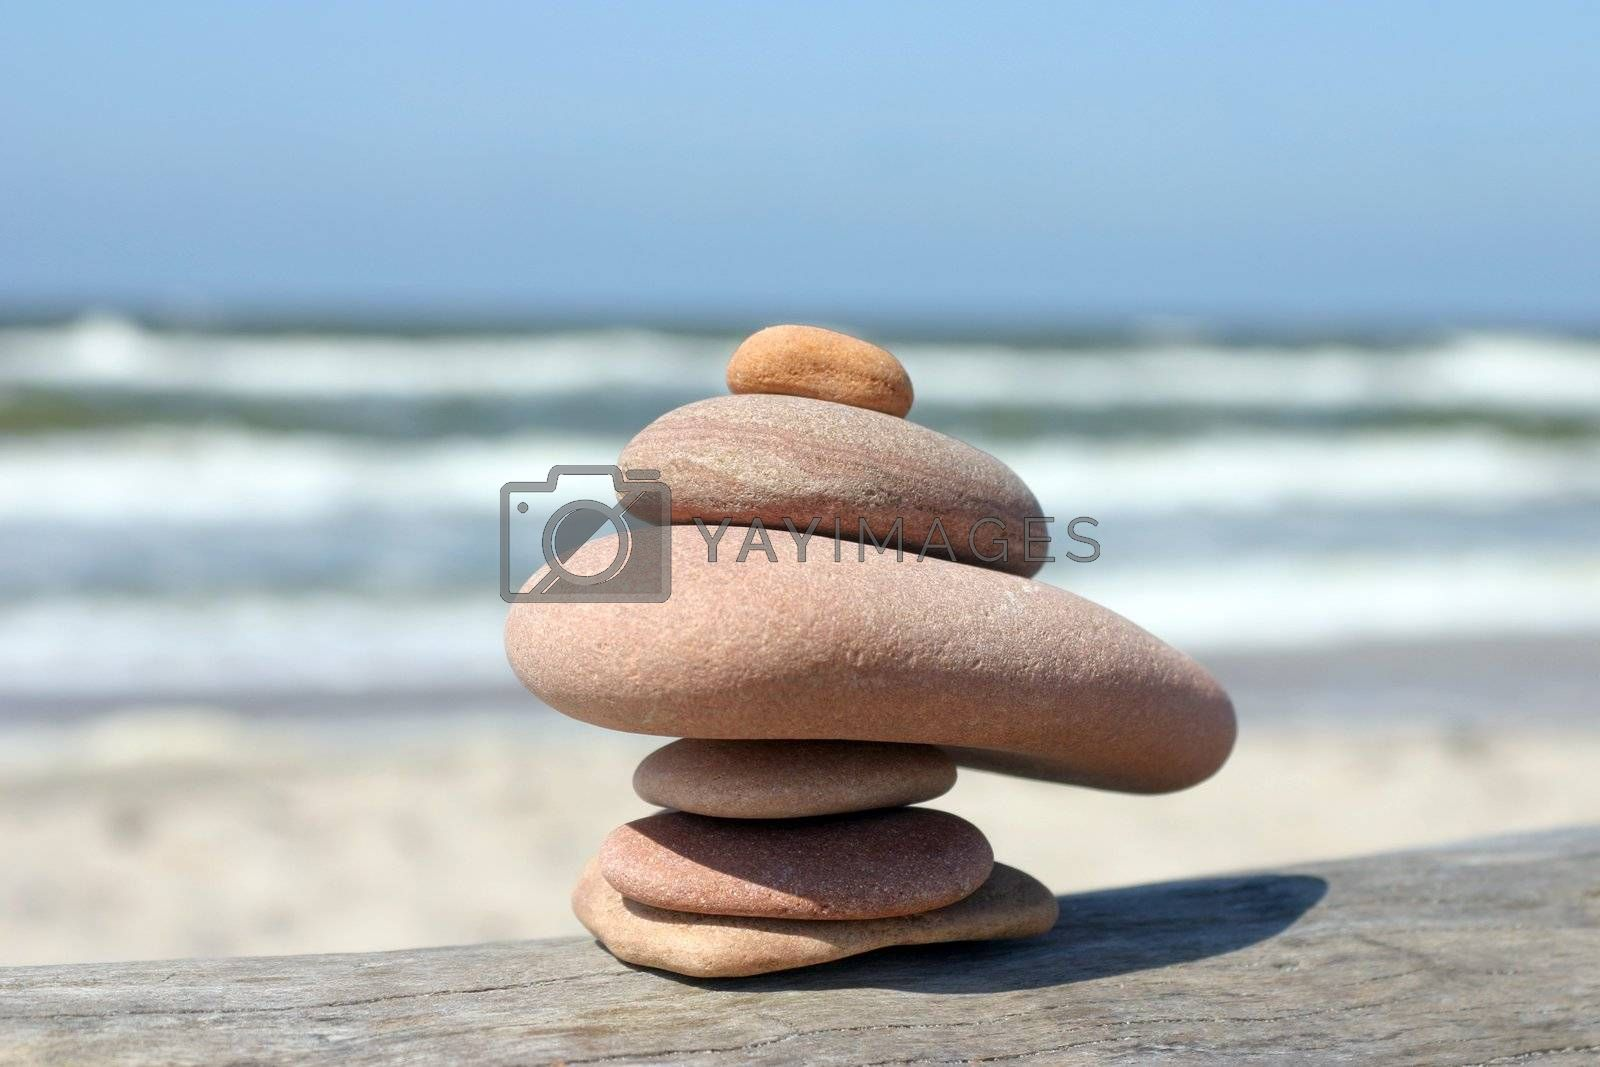 Pebble stones balancing on each other, close-up picture